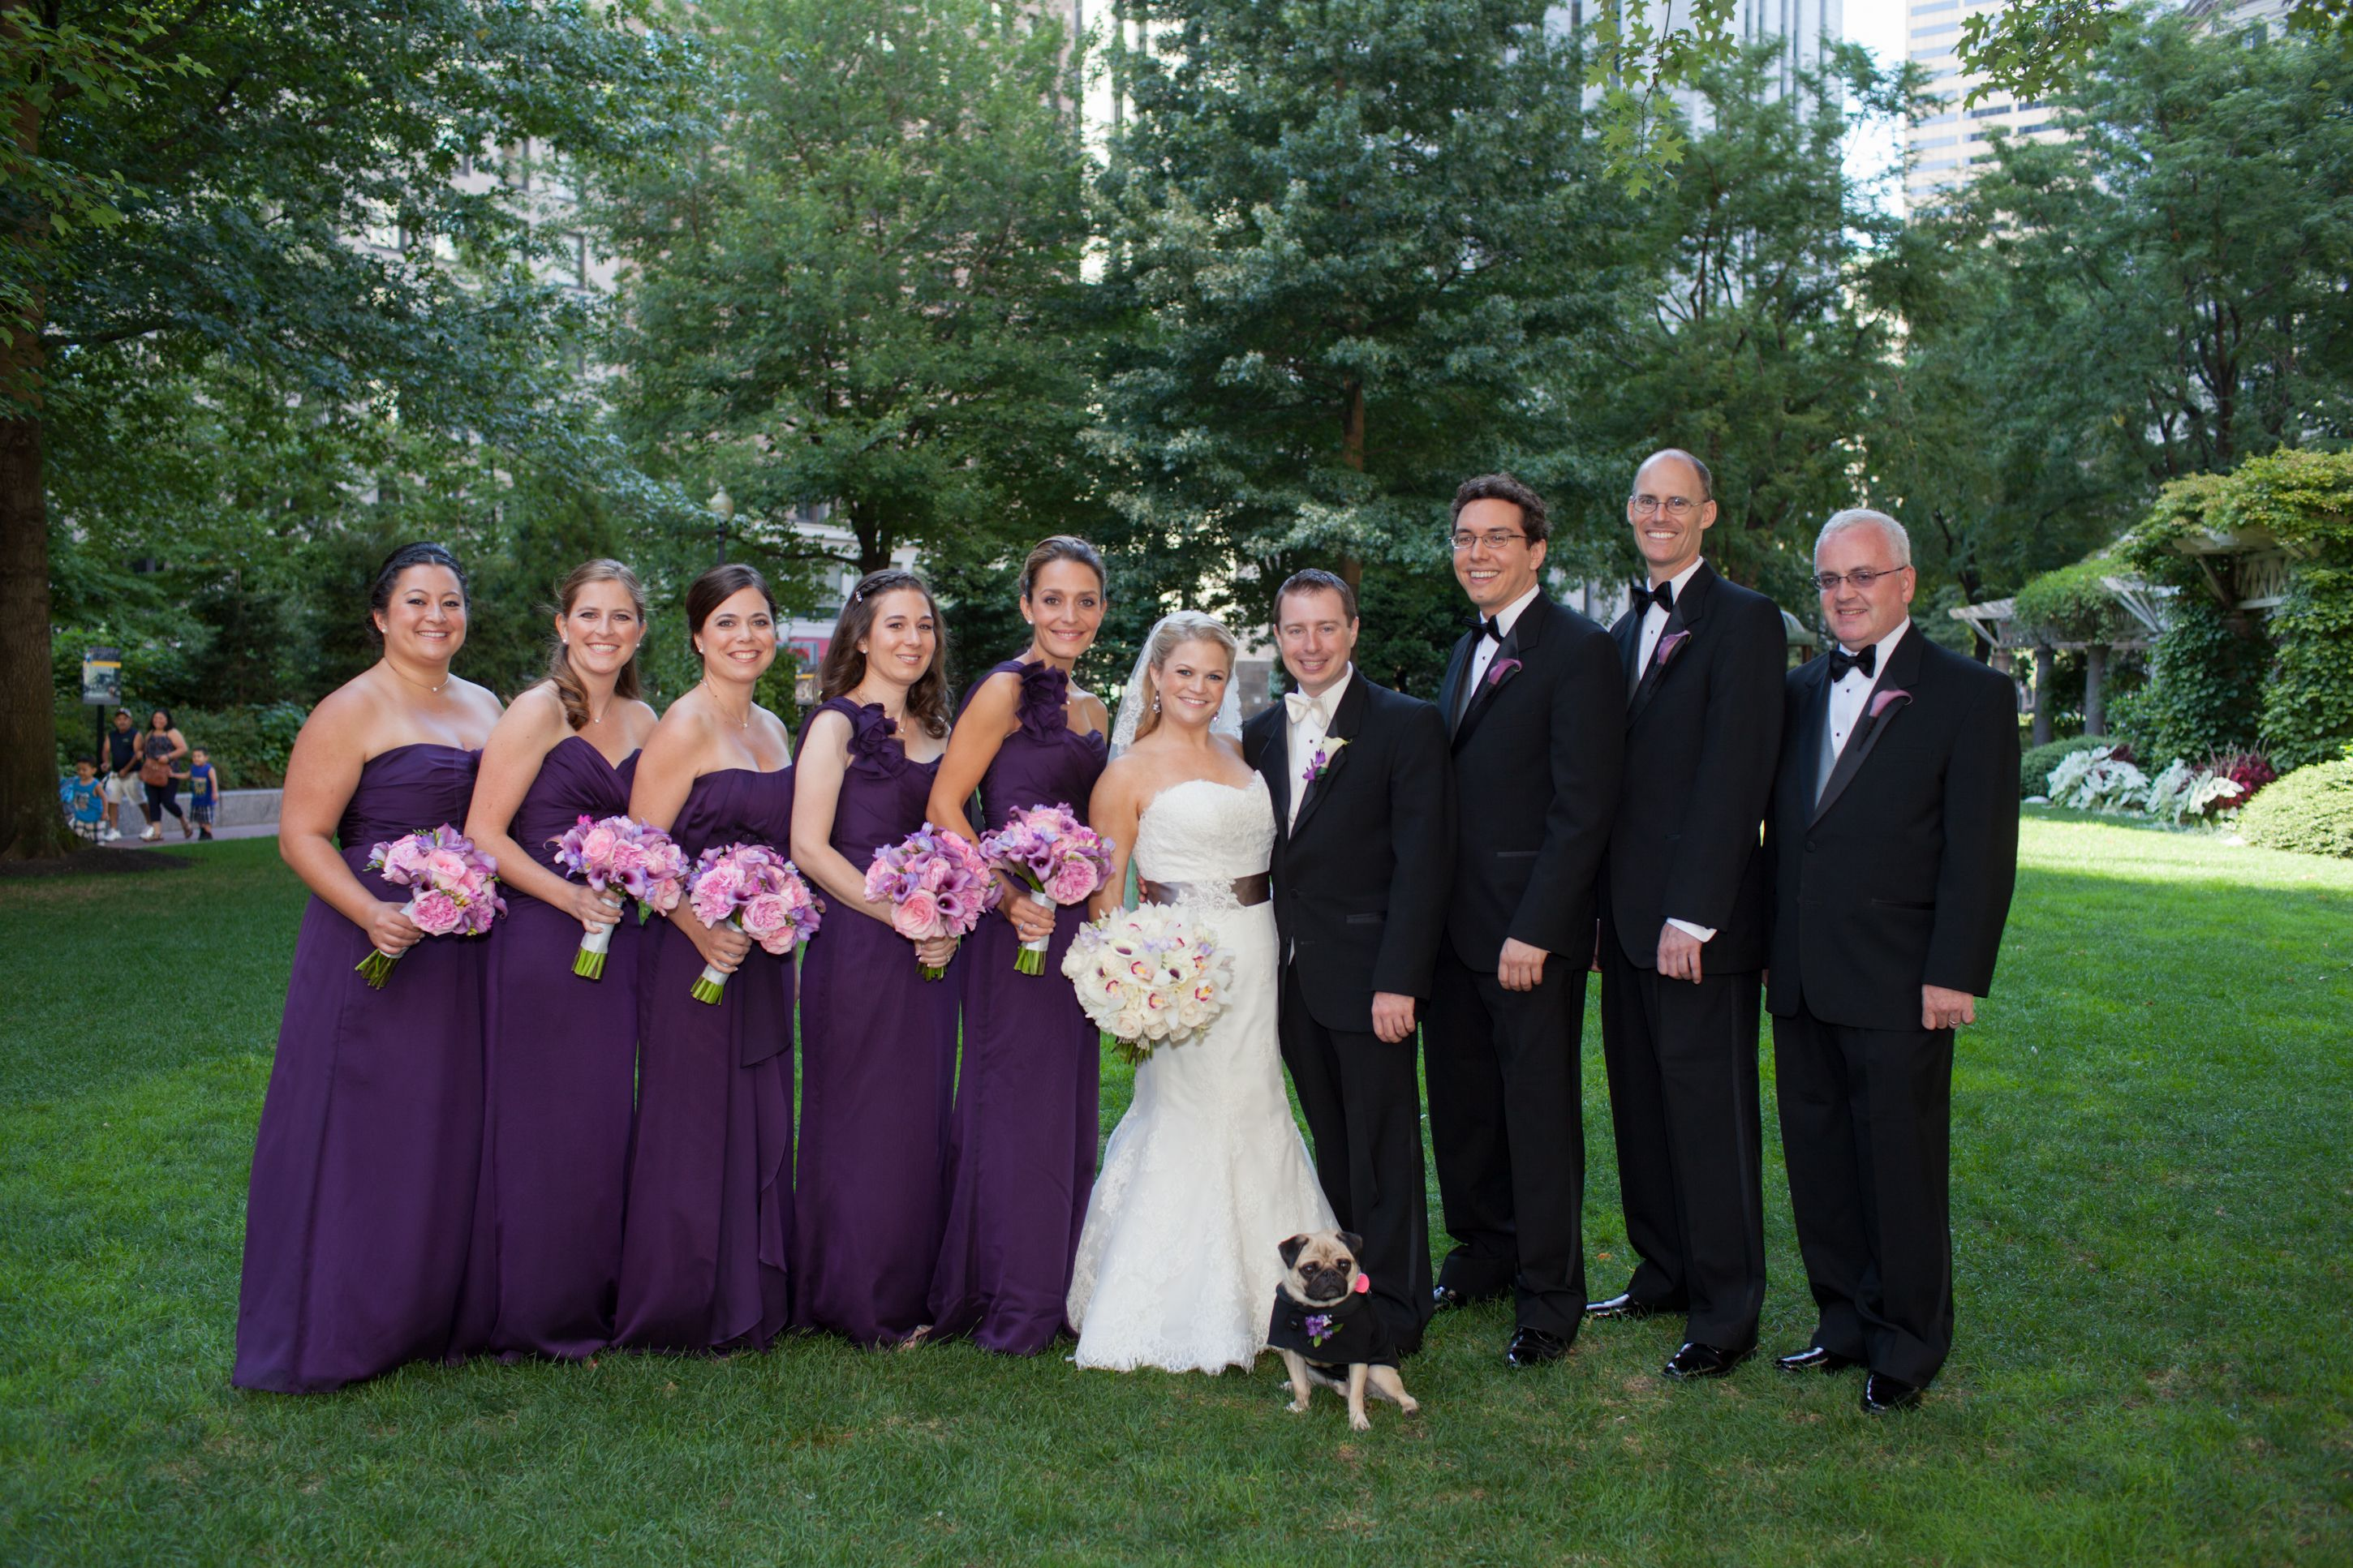 Bridal Party Photos On The Green With Beanpot Jlm Weddings